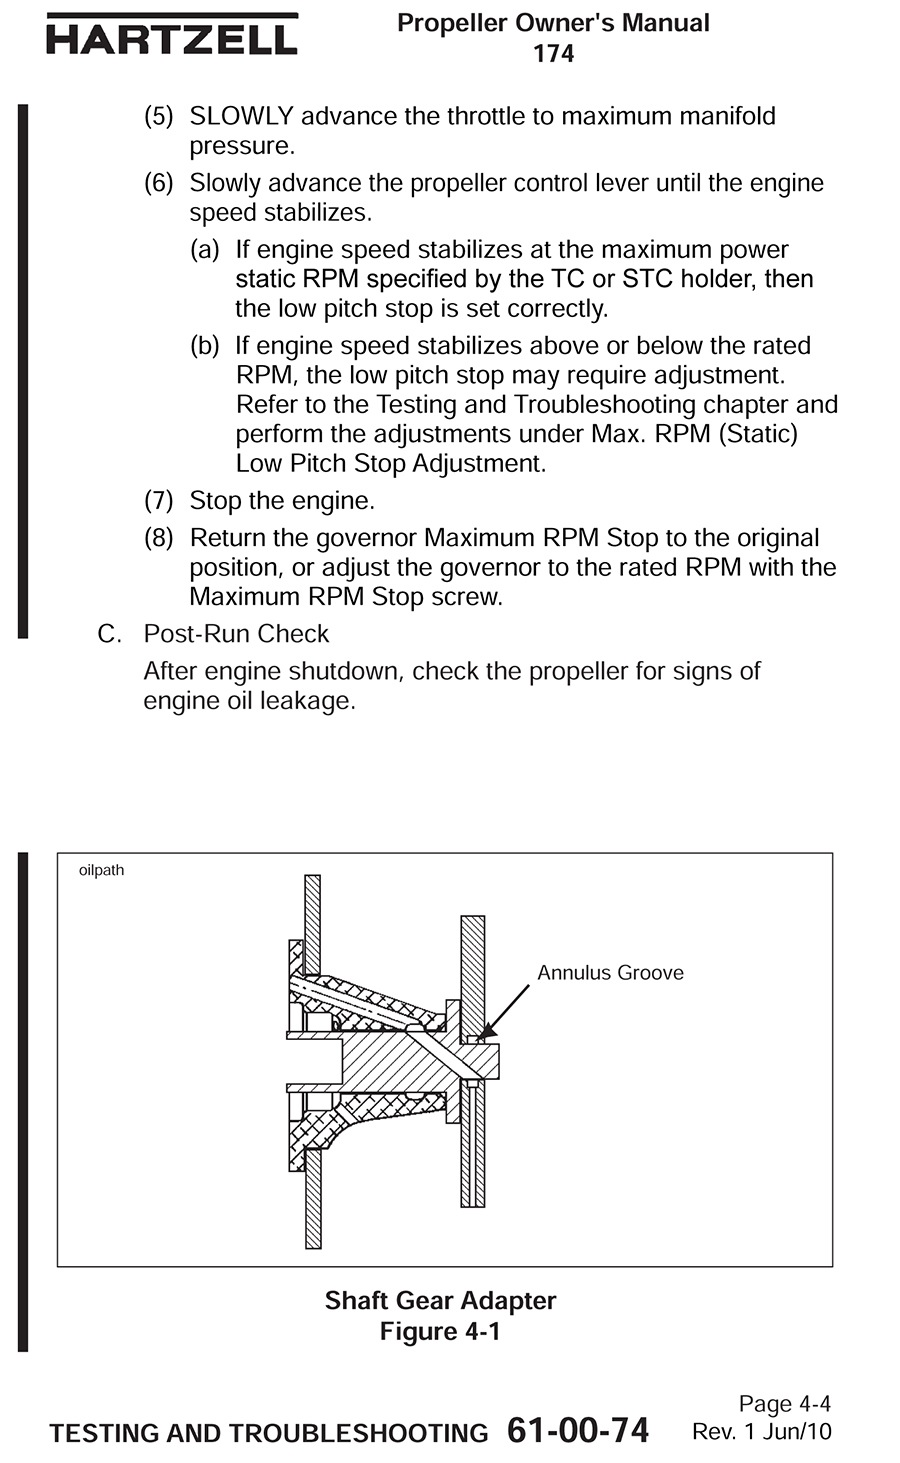 Hartzell Prop Manual 2010 page94